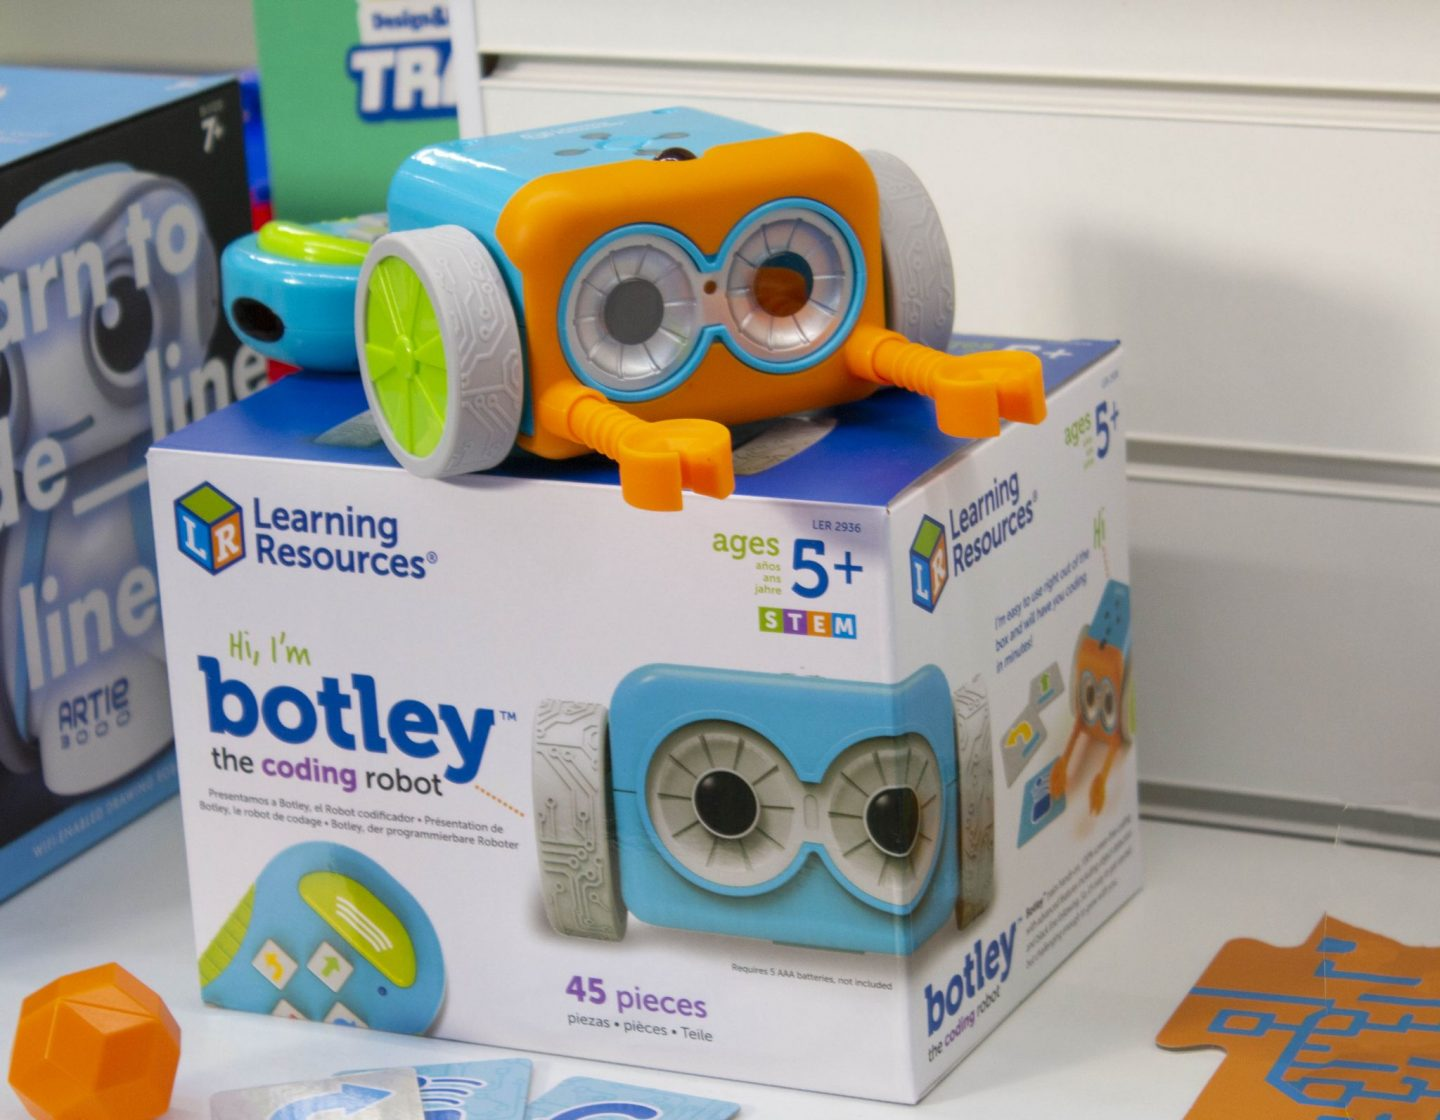 Botley, Learning resources, codingThe Toy Fair, Toy Fair 2019, The Toy Fair 2019, Microscooters, dadbloguk, dad blog uk, dadbloguk.com, school run dad, sahd, wahd toys, gifts